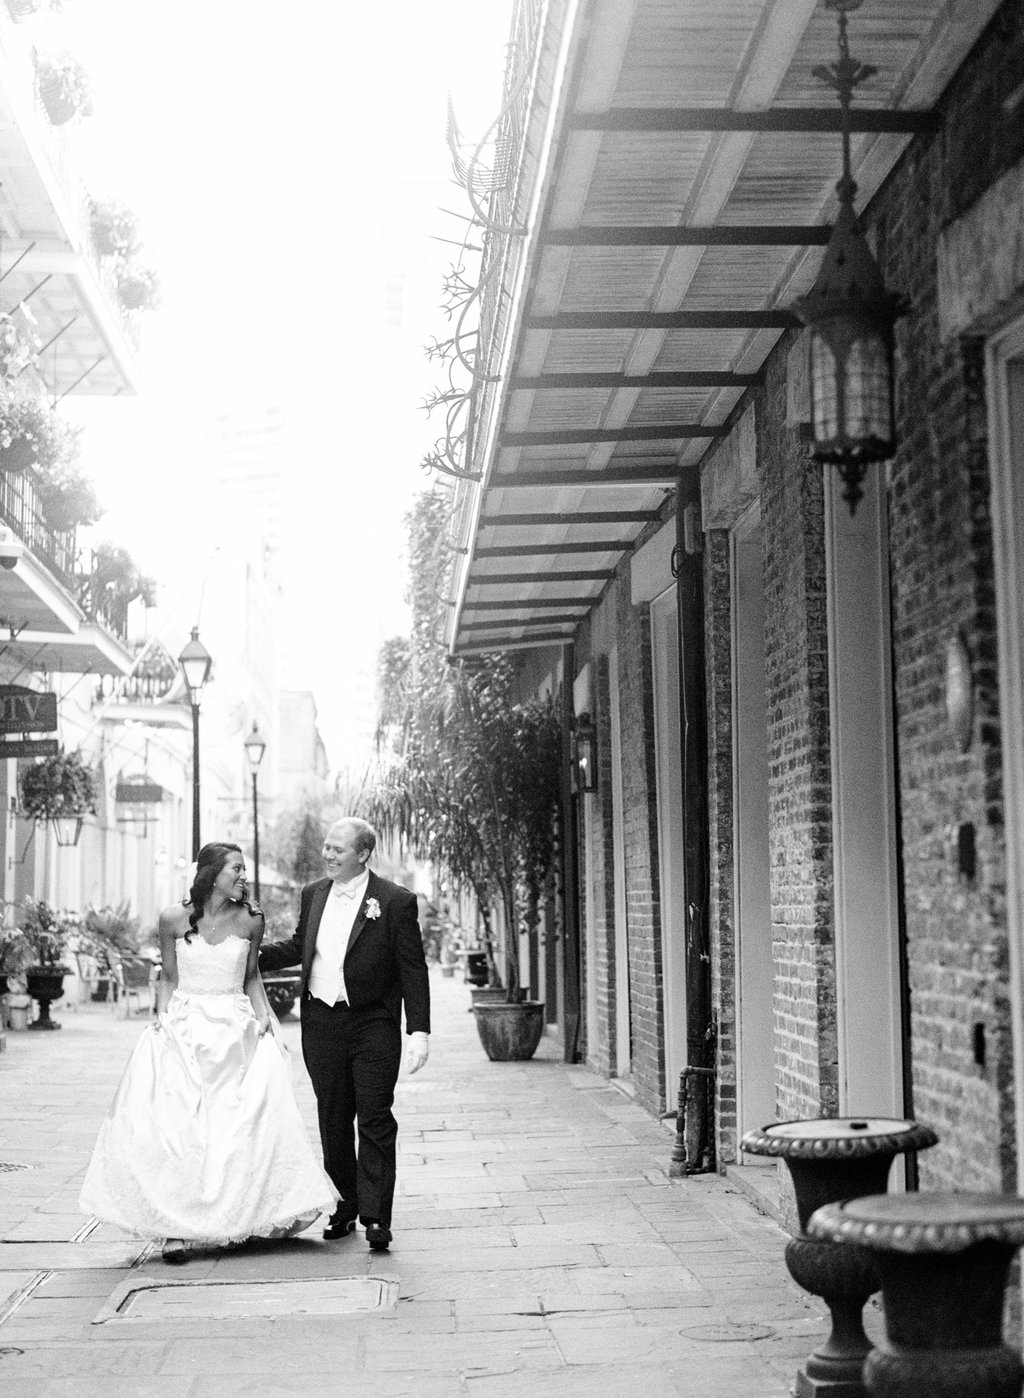 black and white photo of the bride and groom walking down a street in the French Quarter in New Orleans next to a brick wall